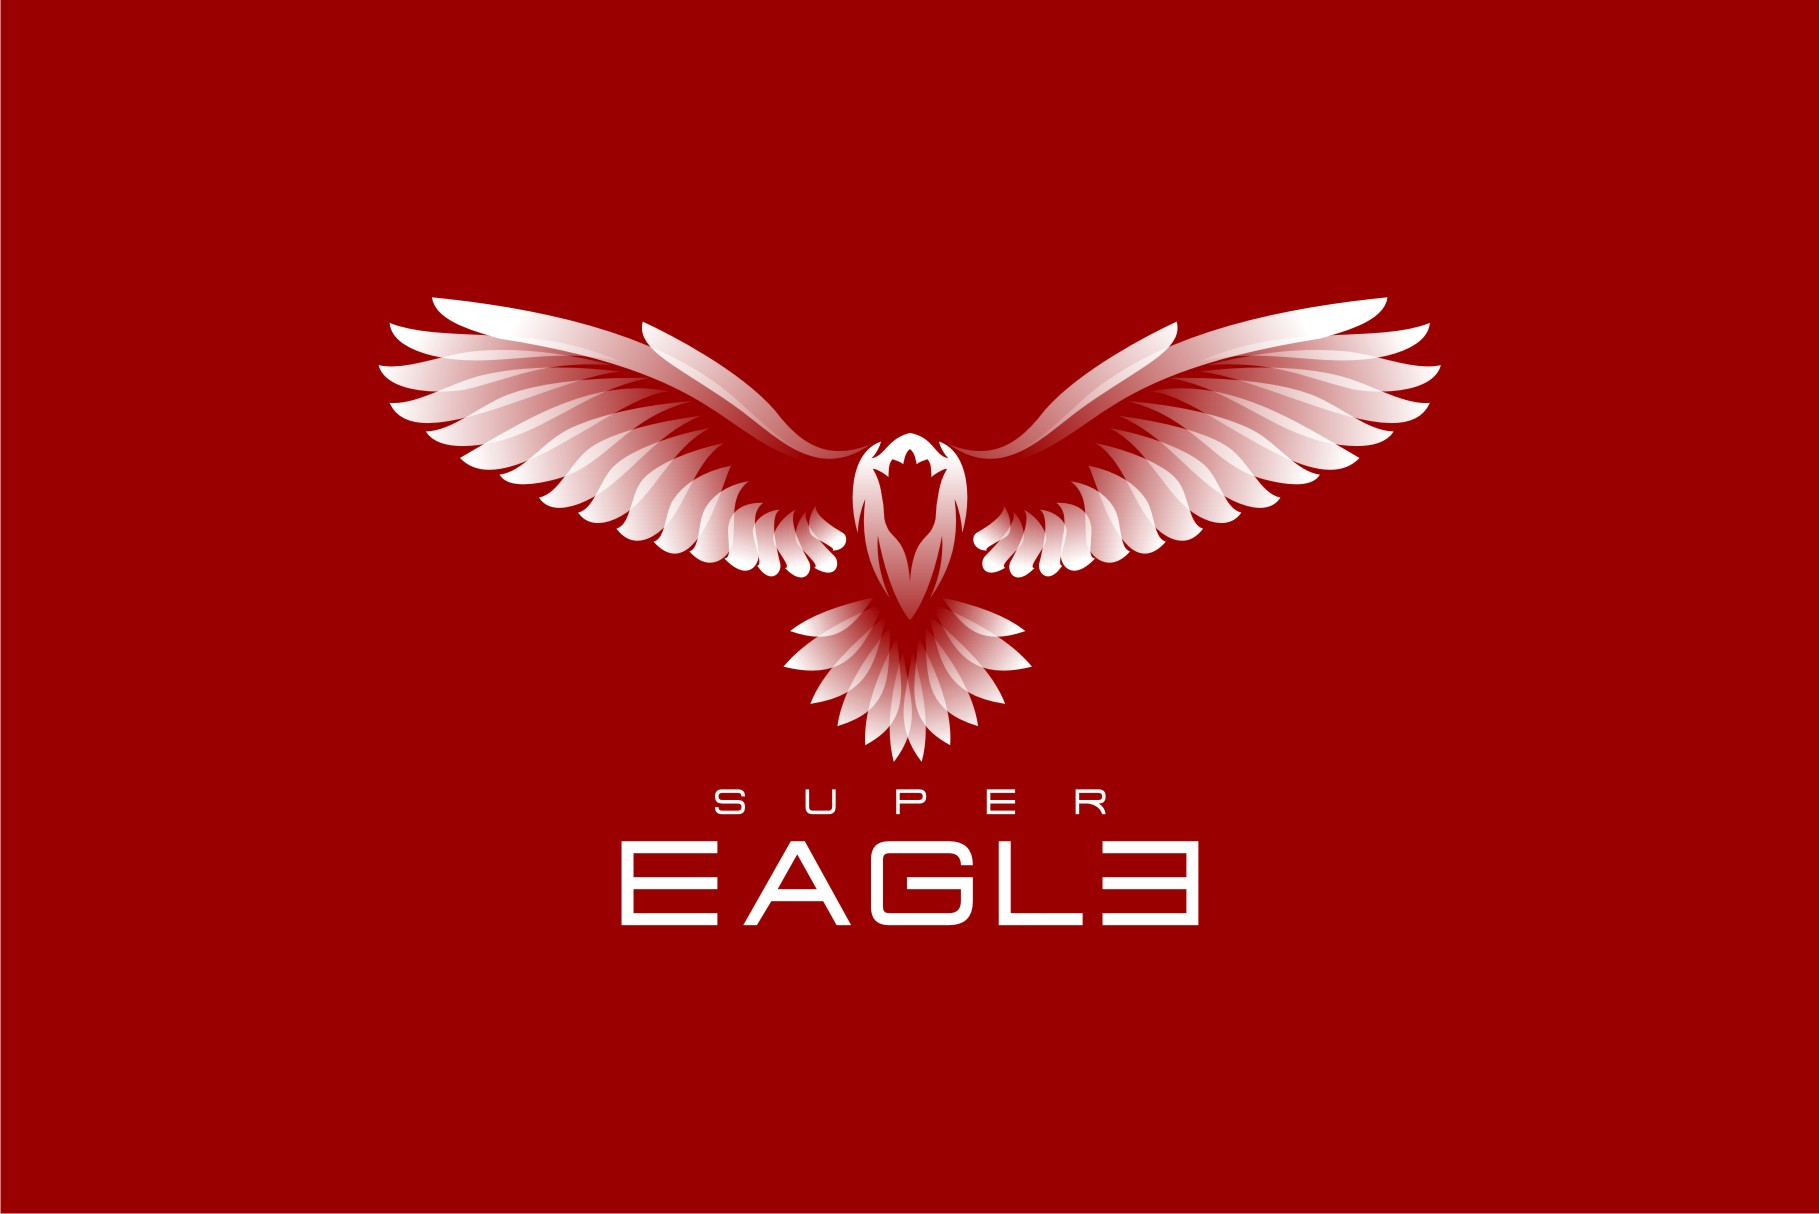 Download Free Super Eagle Graphic By Herulogo Creative Fabrica for Cricut Explore, Silhouette and other cutting machines.